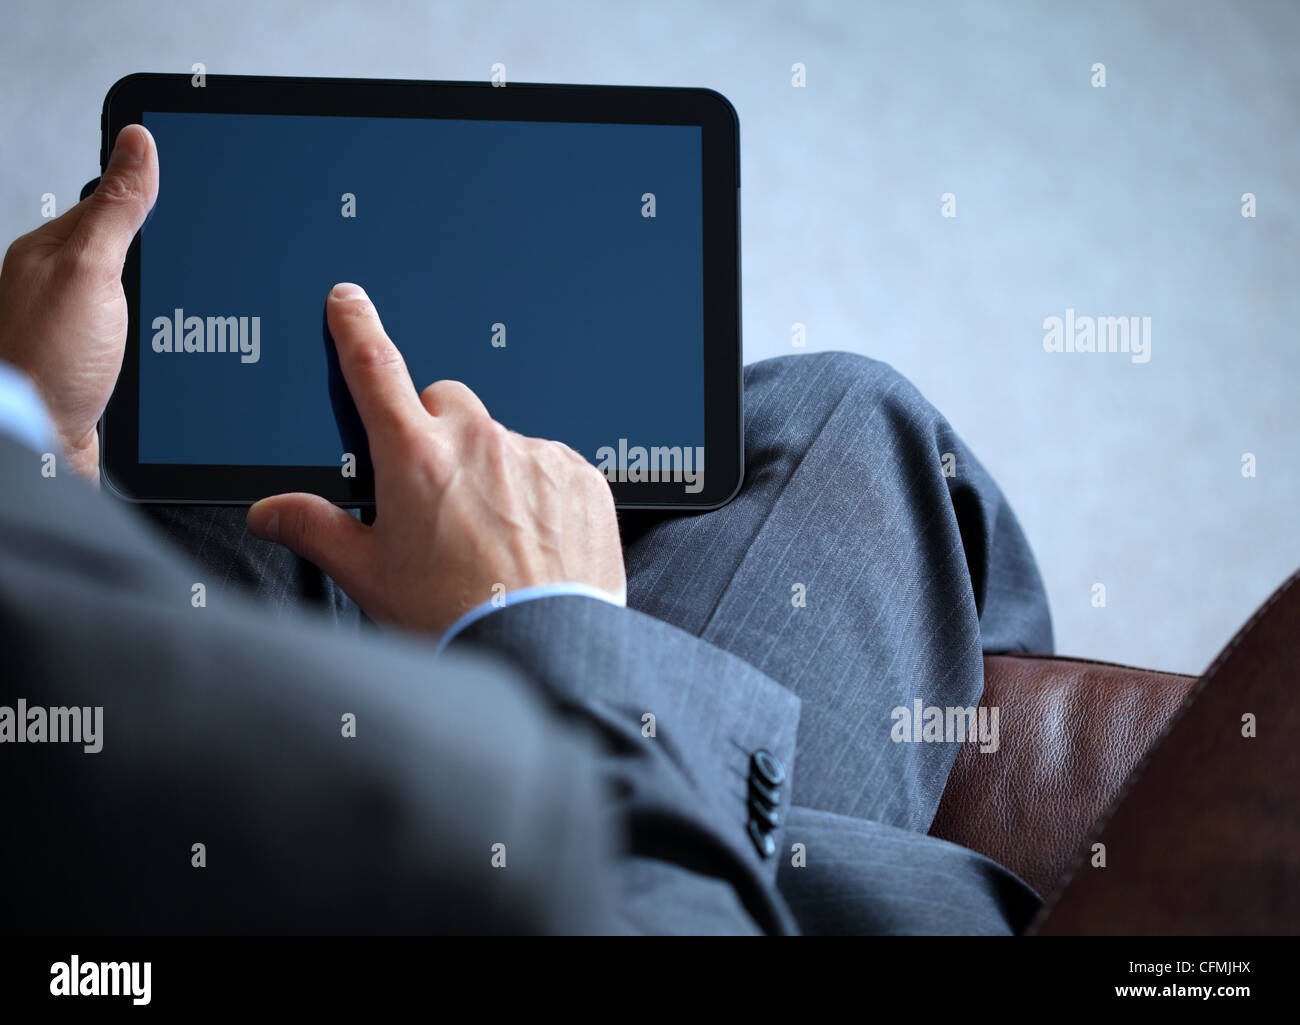 Business man working on digital tablet - Stock Image